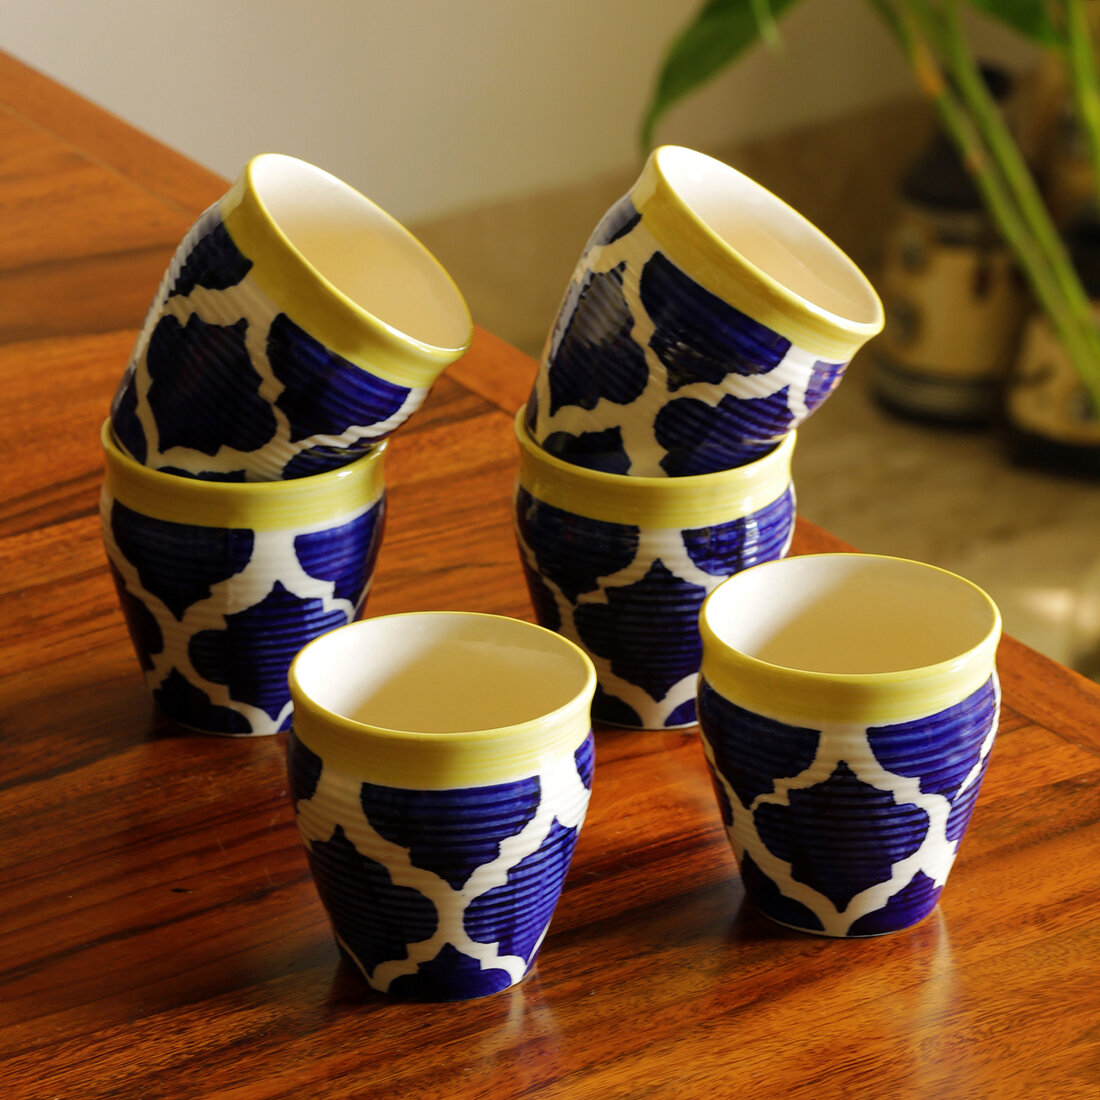 Exclusivelane Tropic Of Kulhads Handpainted In Ceramic Set Of 6 Wayfair